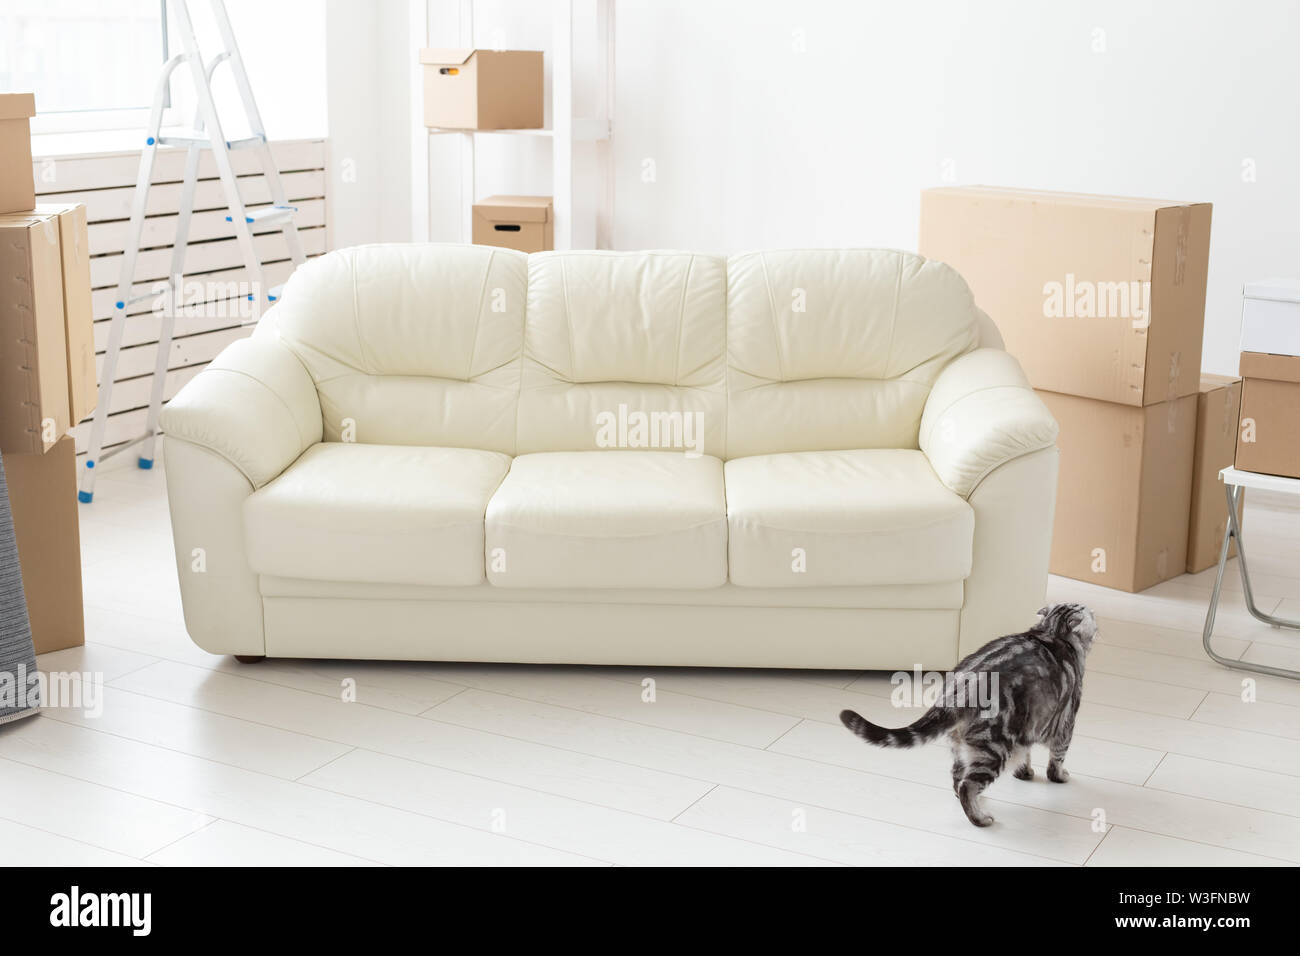 Beautiful gray scottish fold cat sits near a new empty sofa while moving to a new apartment. Concept of housewarming and good tradition with a cat - Stock Image